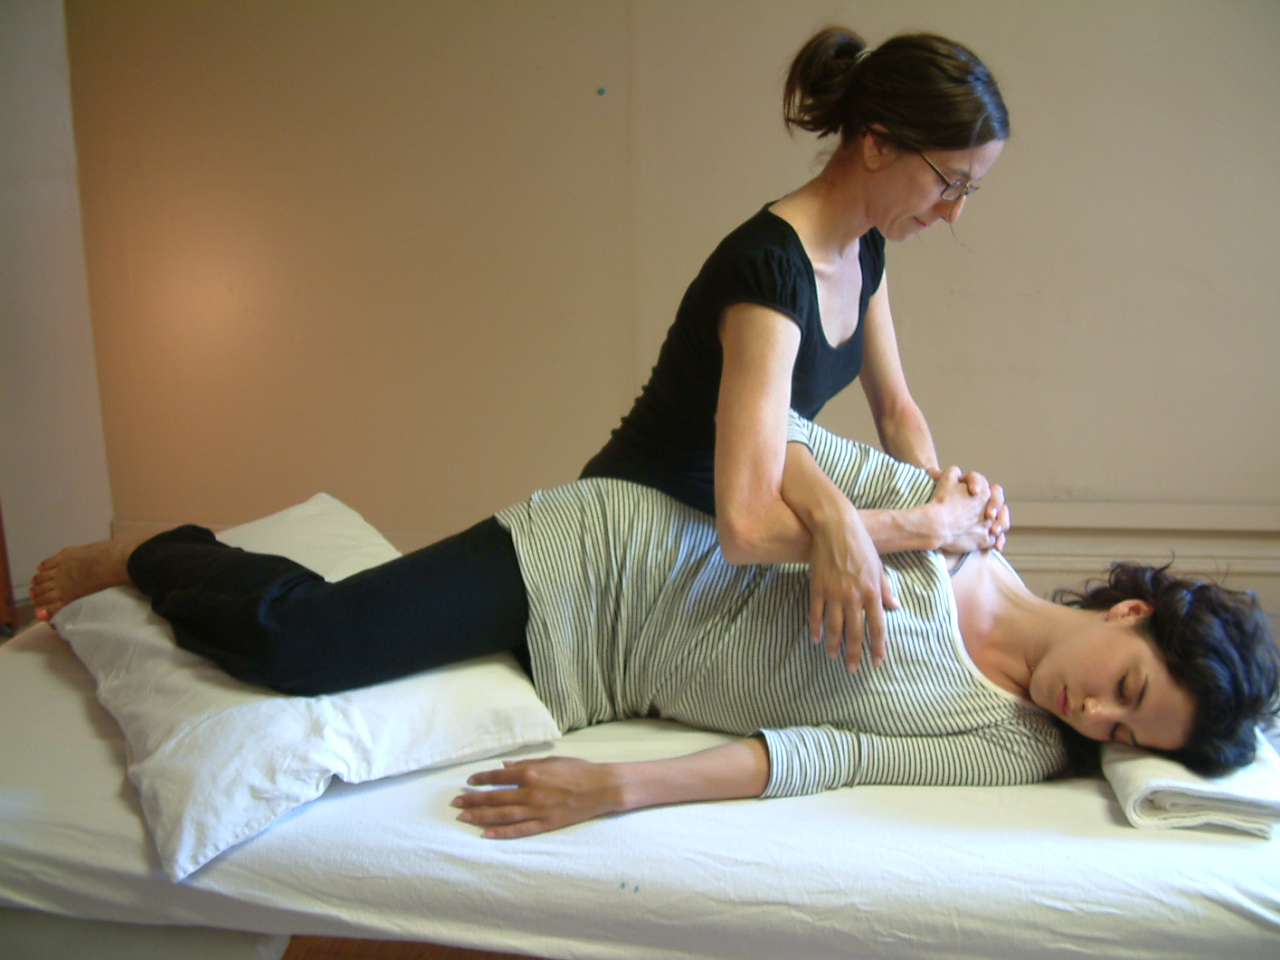 Benefits - Shiatsu is an incredibly effective way to treat pain and ease emotional stress. The long-holding pressure used during a shiatsu treatment activates the parasympathetic nervous system. This gives your body a break from the state of high alertness and intensity many of us need to maintain in order to get through our busy days. Your body's attention shifts to the internal organs: your peripheral muscles and nerves relax, digestive organs become more active, secretions increase, blood pressure and heart rate decline, your busy mind quiets and in general, your body prepares to relax and heal. On top of all of this, the pain and stress you came in with will be greatly reduced.Conditions Shiatsu Helps: Back Pain, Neck and Shoulder Pain, Anxiety, Depression and Fatigue, Stress, Carpal Tunnel Syndrome, Repetitive Strain Injury, Arthritis, Bursitis, Joint Pain and Fibromyalgia, Sciatica, Spinal Stenosis, Sports Injuries, Pregnancy-related issues, Insomnia.